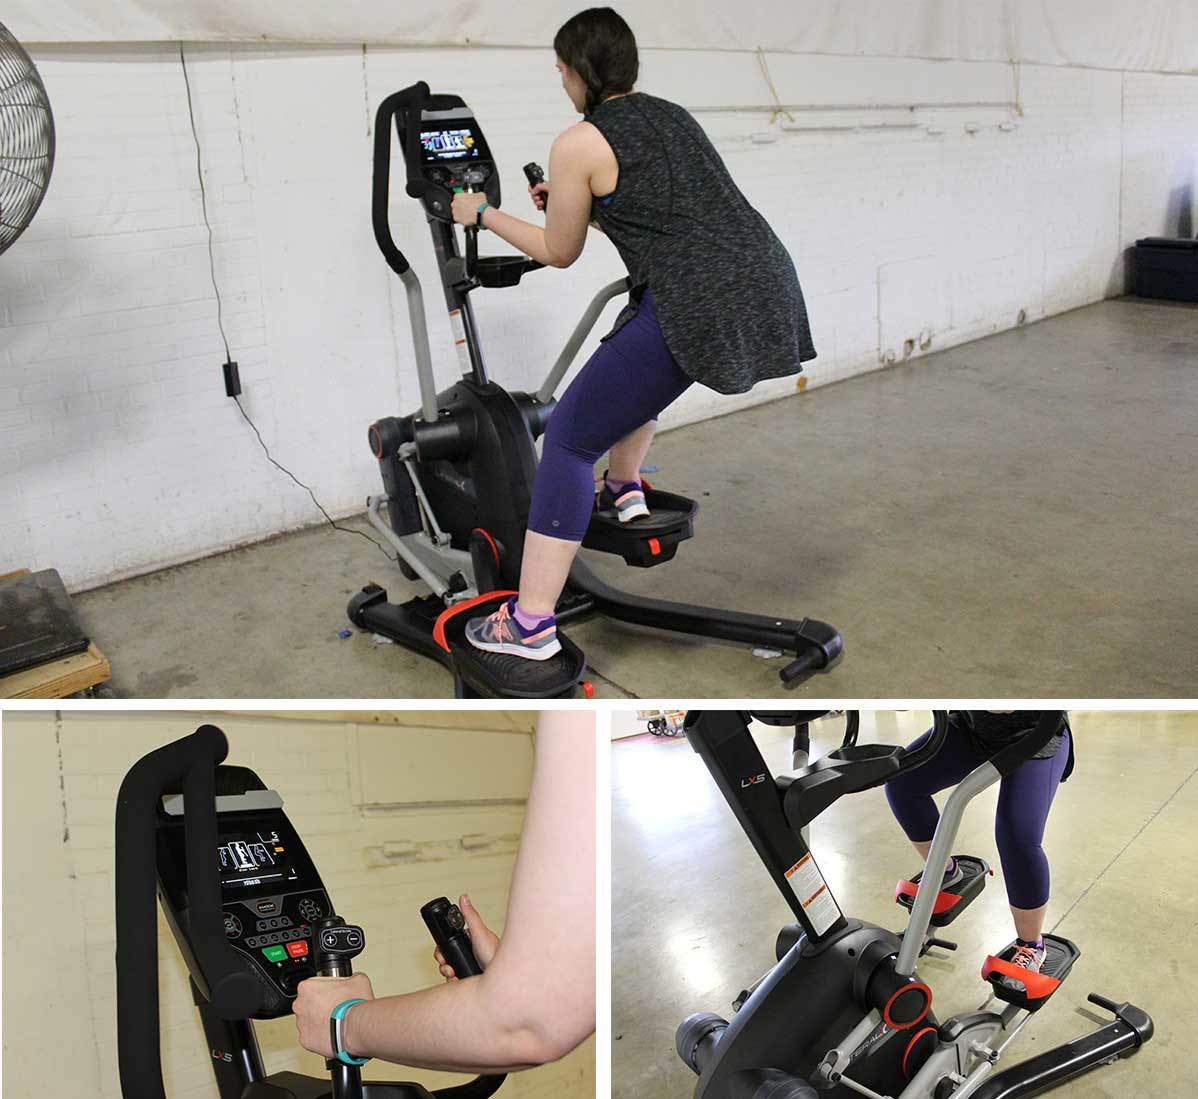 Anna Knief working out on the Bowflex LateralX LX5 machine in three different angles. photo